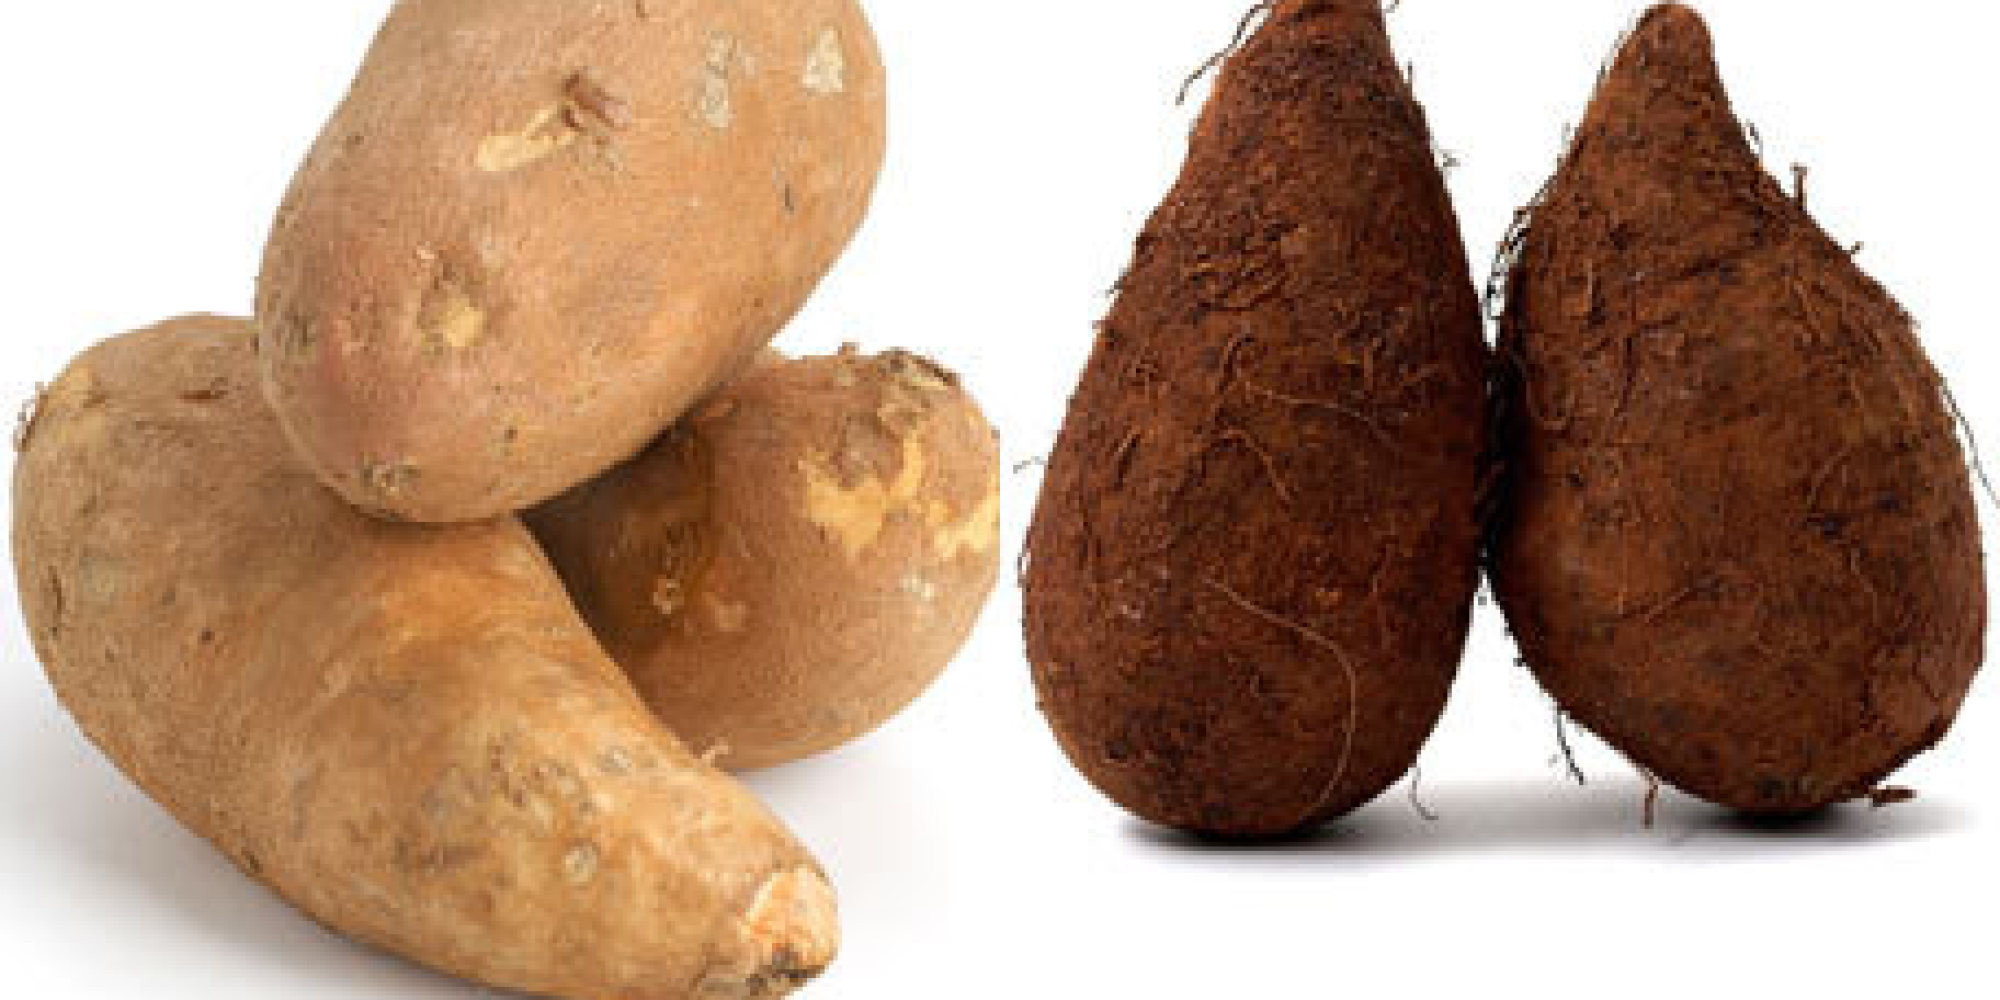 Yams Vs Sweet Potato  What s The Difference Between Sweet Potatoes and Yams